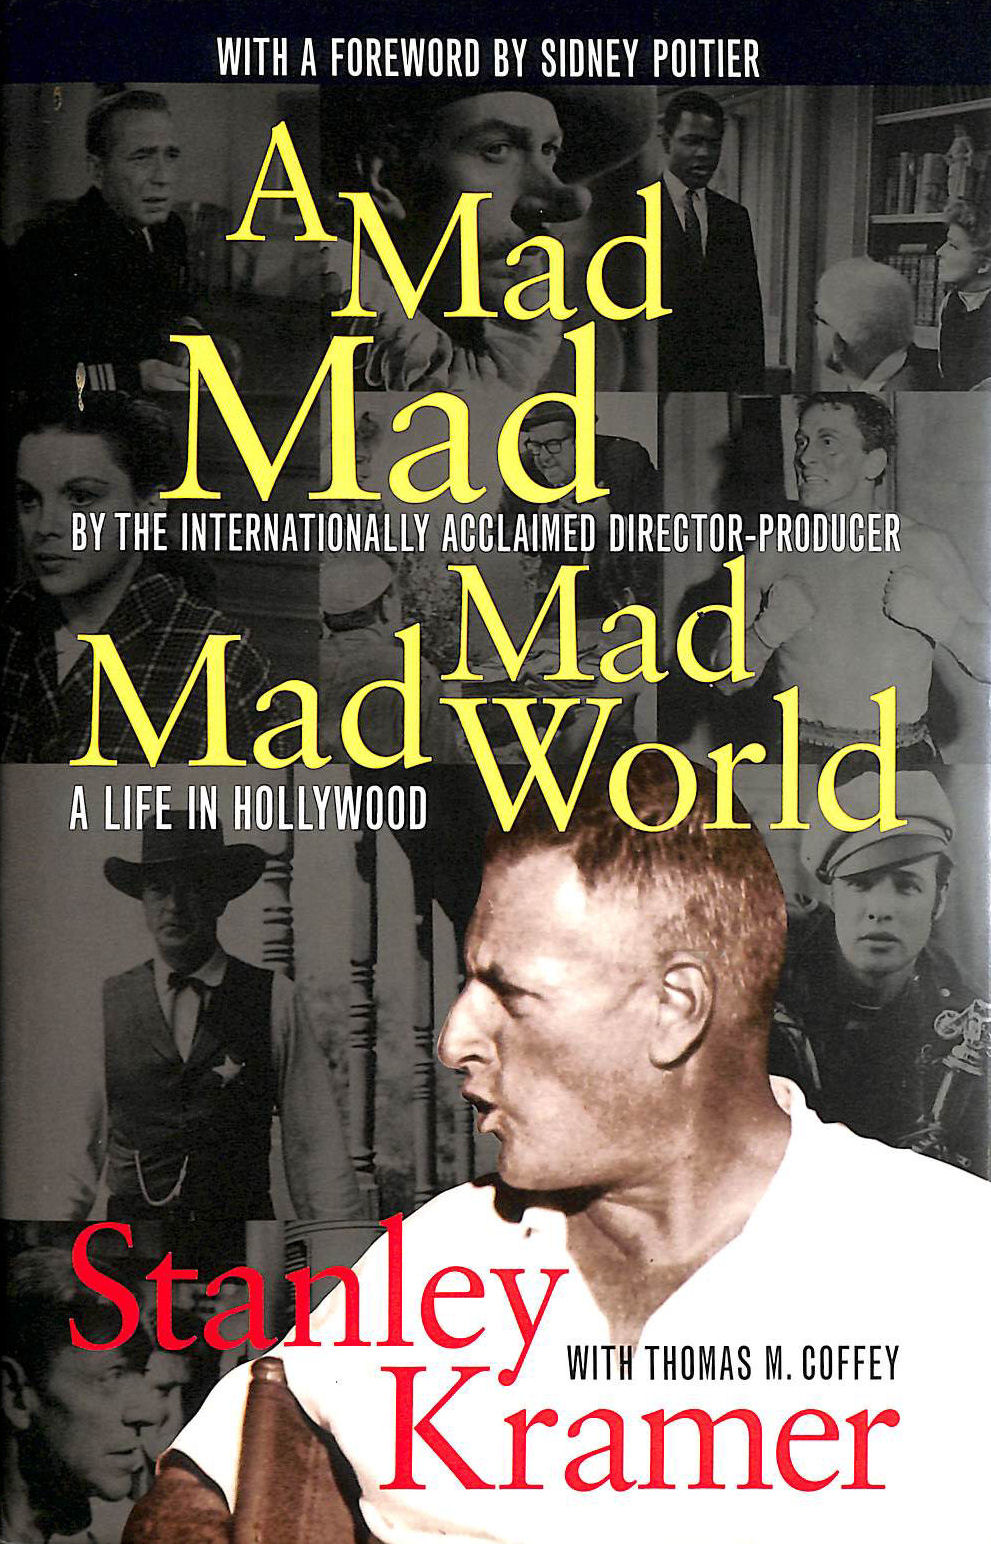 Image for A Mad, Mad, Mad, Mad World: A Life in Hollywood